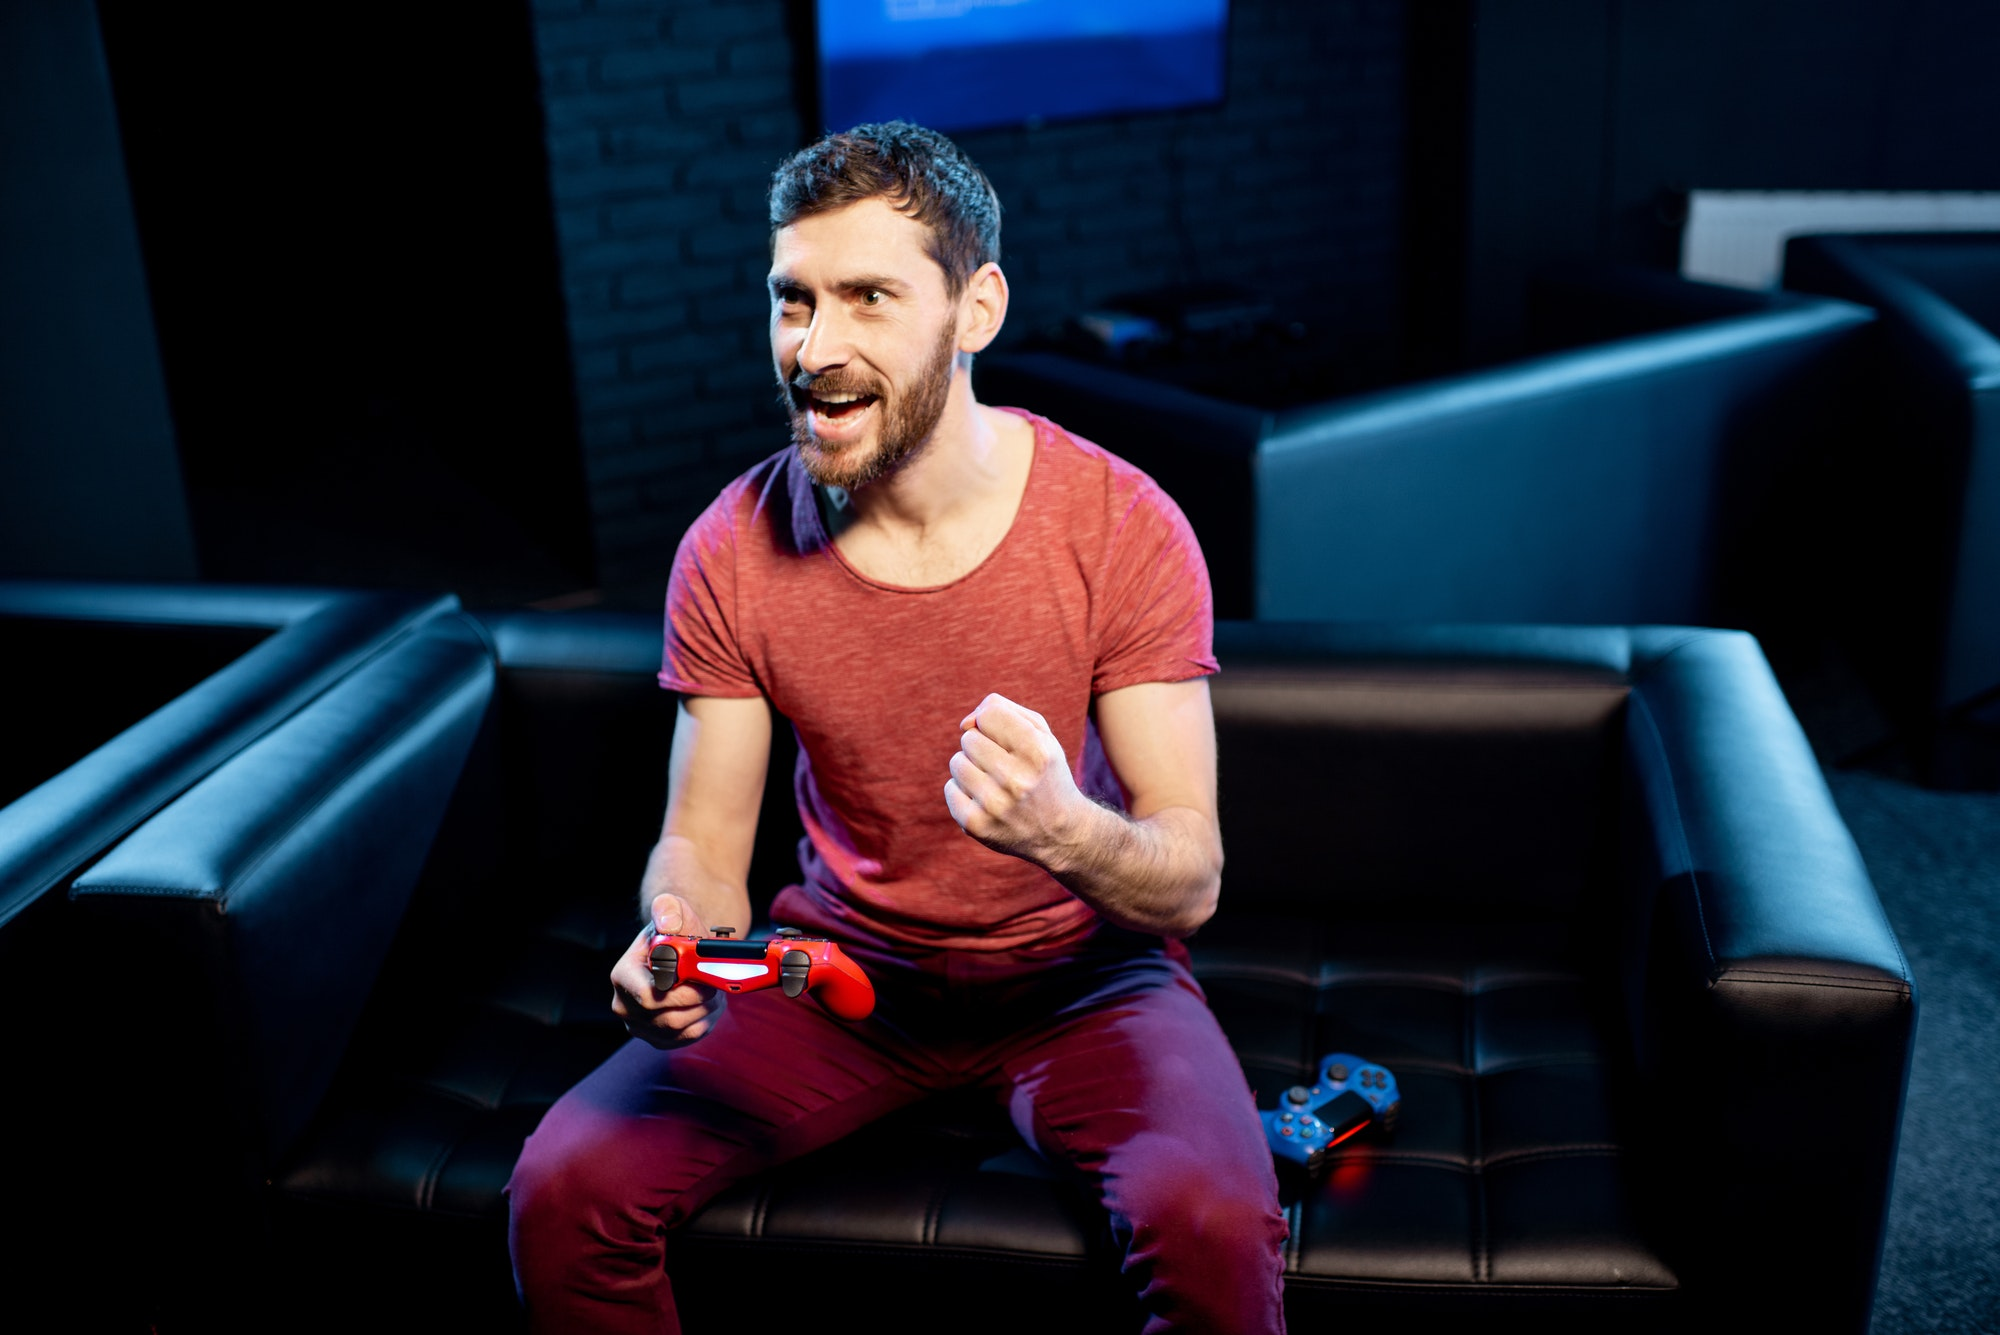 Happy man playing video games with gaming console in the club